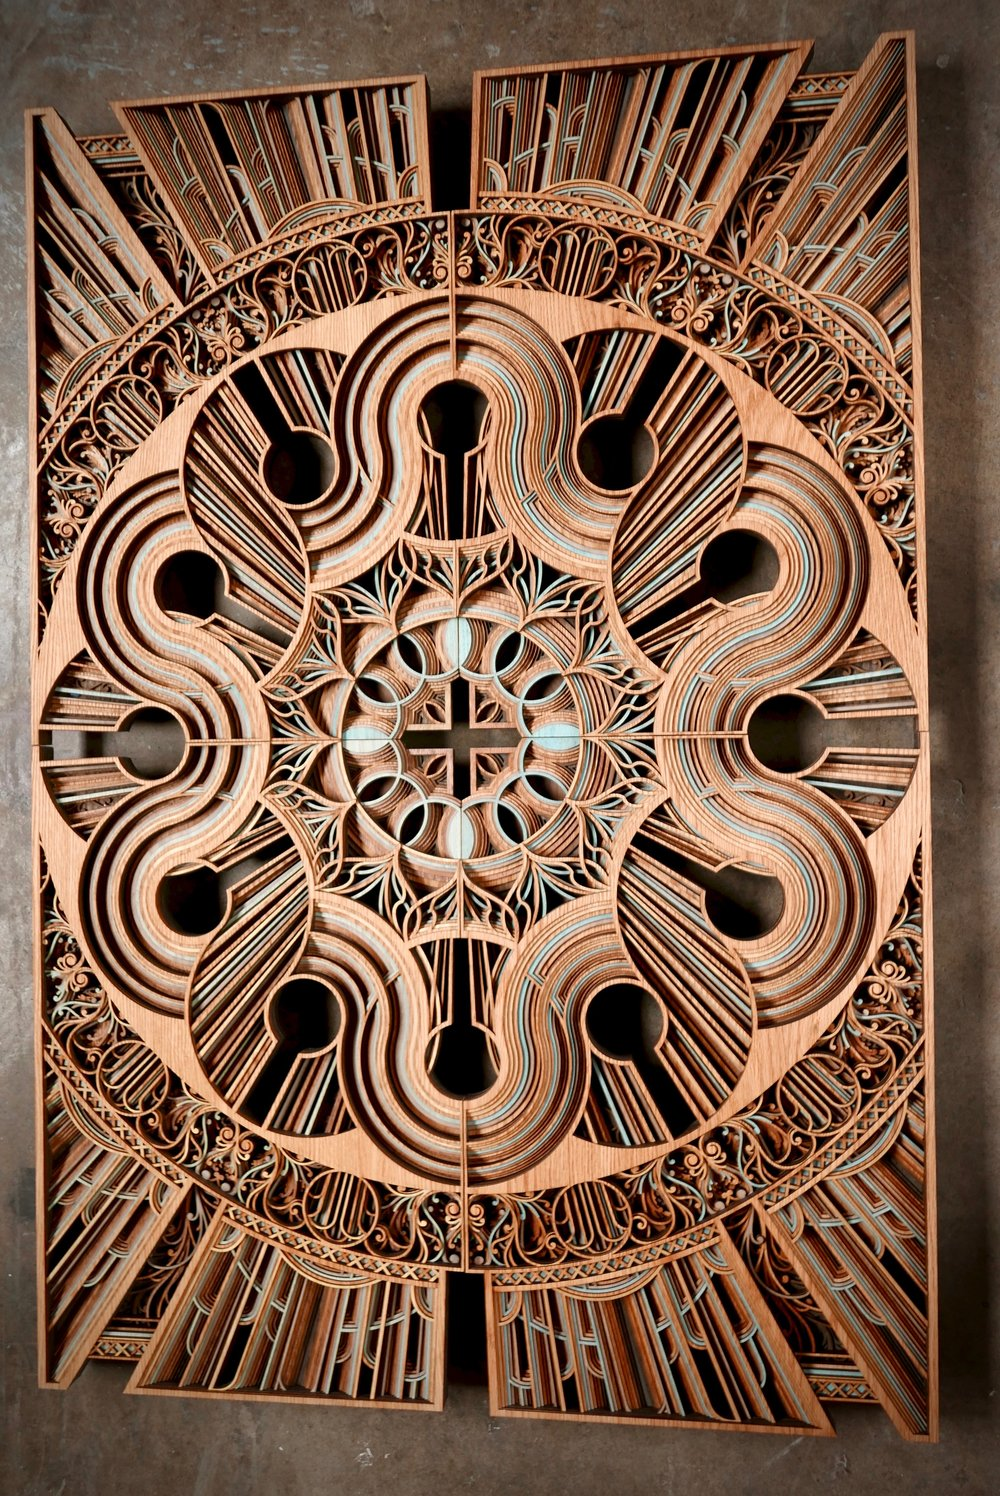 "AUTOPHAGY 62"" x 42"" red oak plywood 2017"